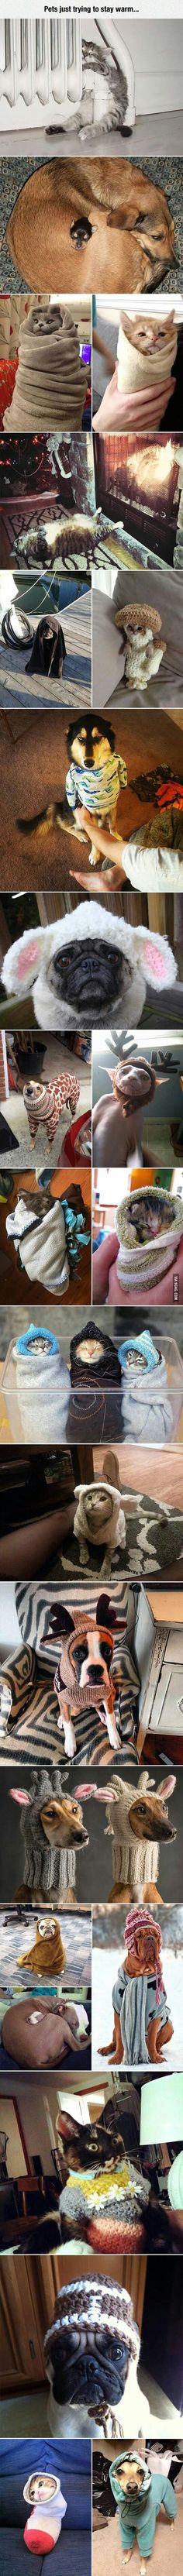 Good night everybody. Thanks for a great day. Here are some cuties you can dream about. - 9GAG